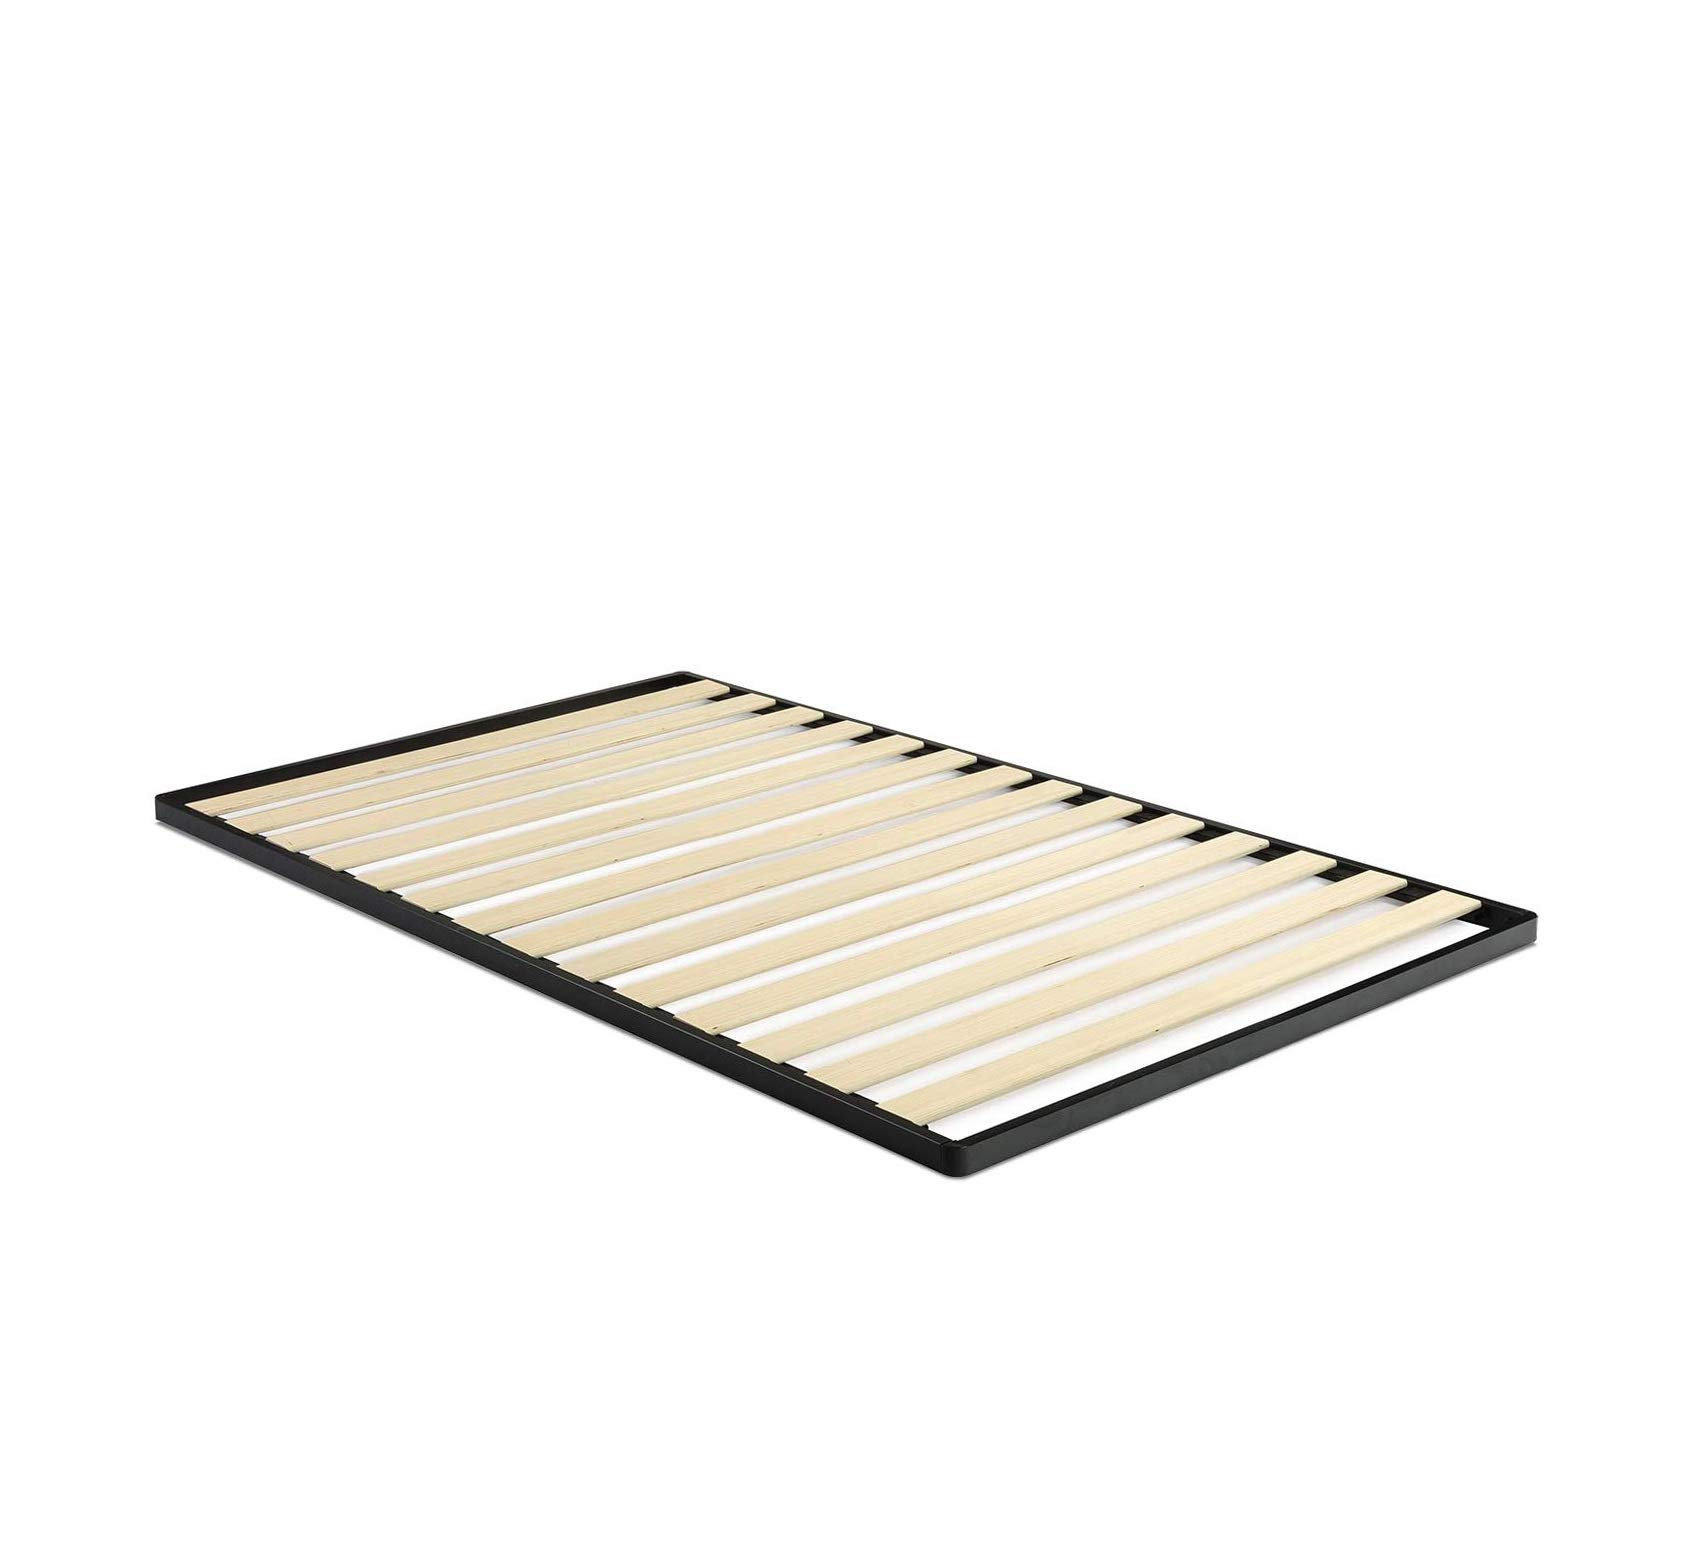 Easy Assembly Wood Slat 1.6 Inch Bunkie Board/Bed Slat Replacement, Queen Comfy Living Home Décor Furniture Heavy Duty